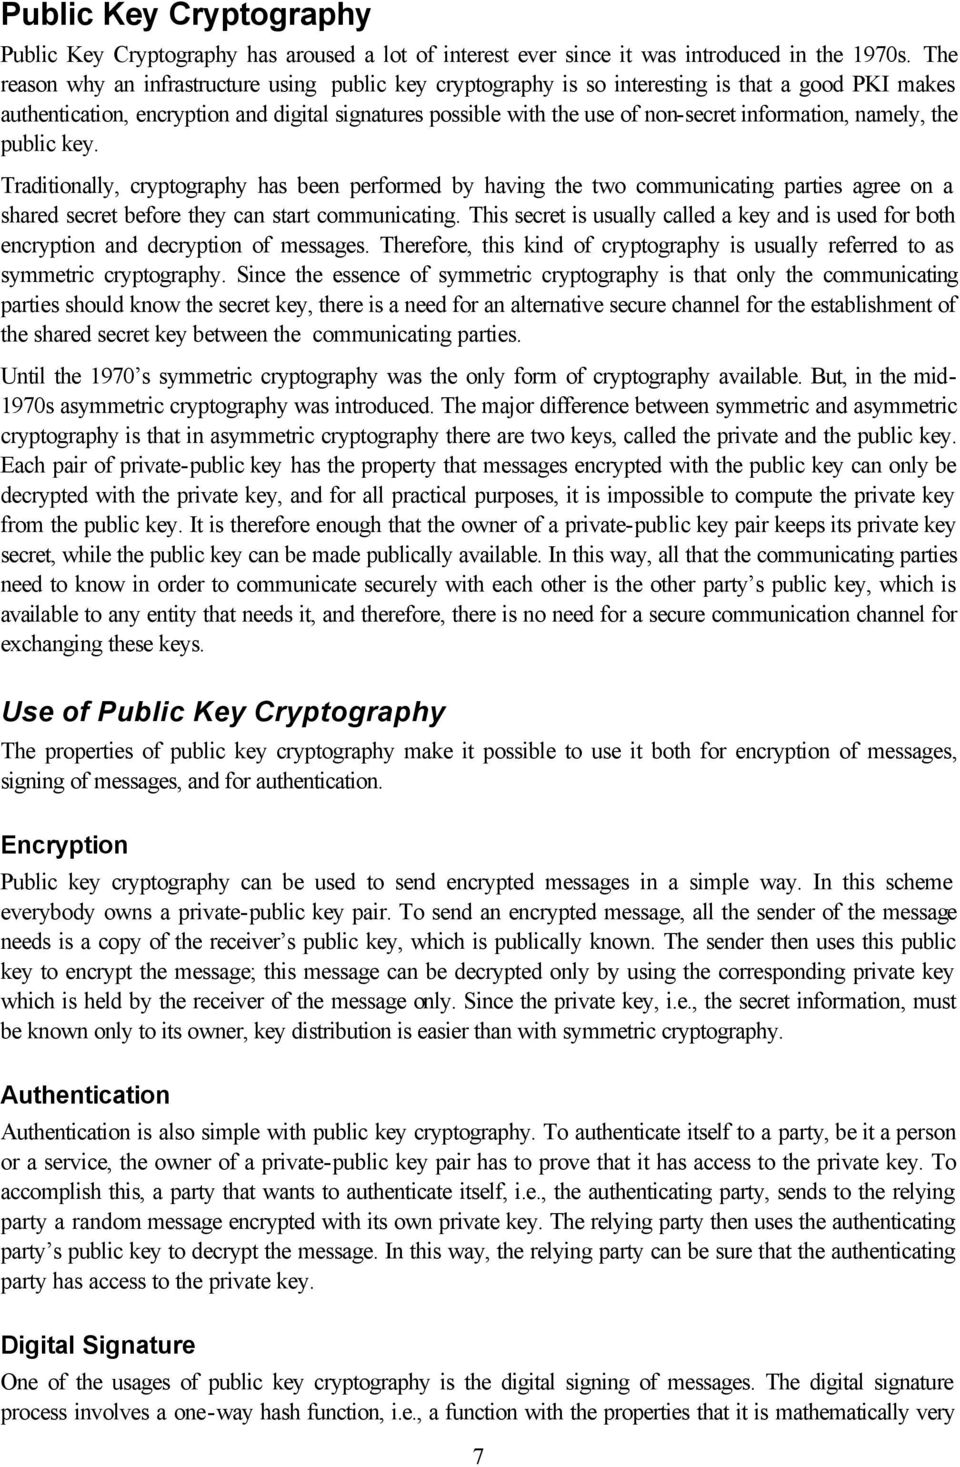 information, namely, the public key. Traditionally, cryptography has been performed by having the two communicating parties agree on a shared secret before they can start communicating.